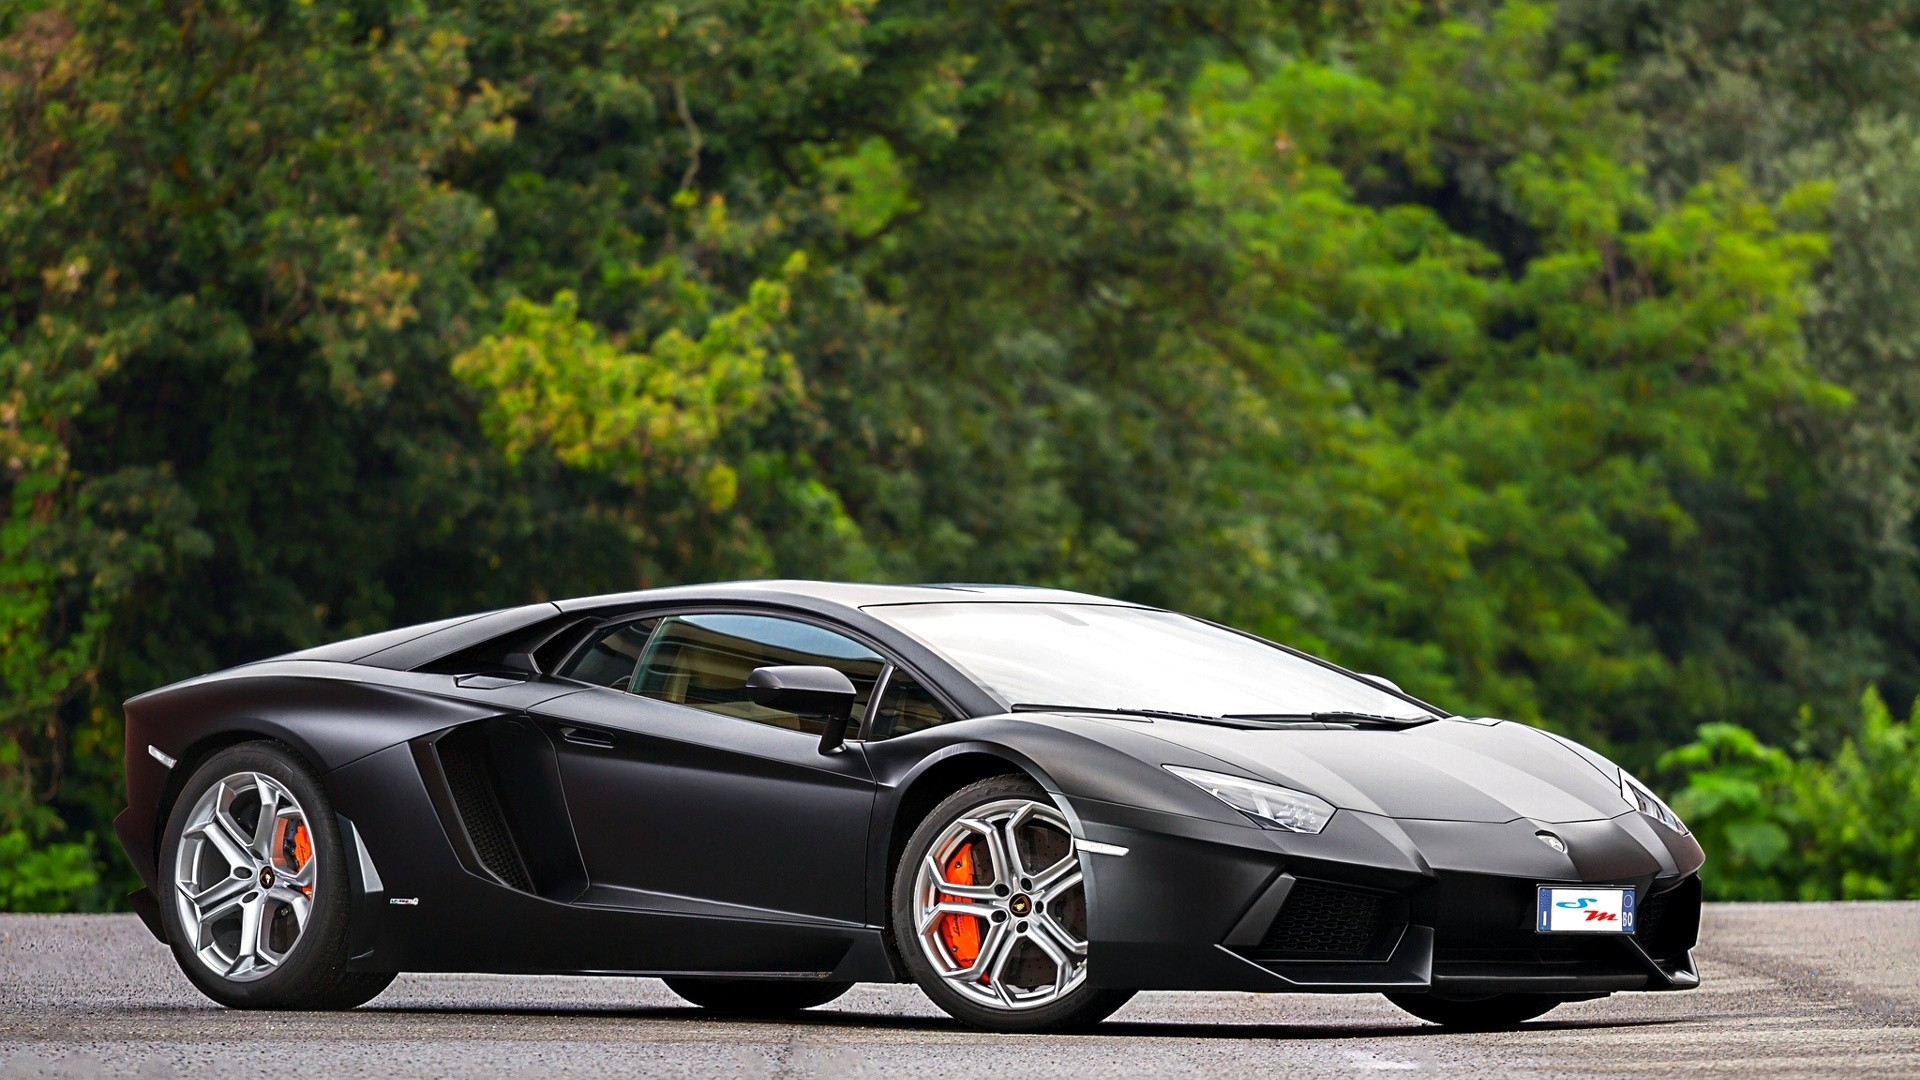 1920x1080 Fresh HD Wallpapers with cool shots of Lamborghini